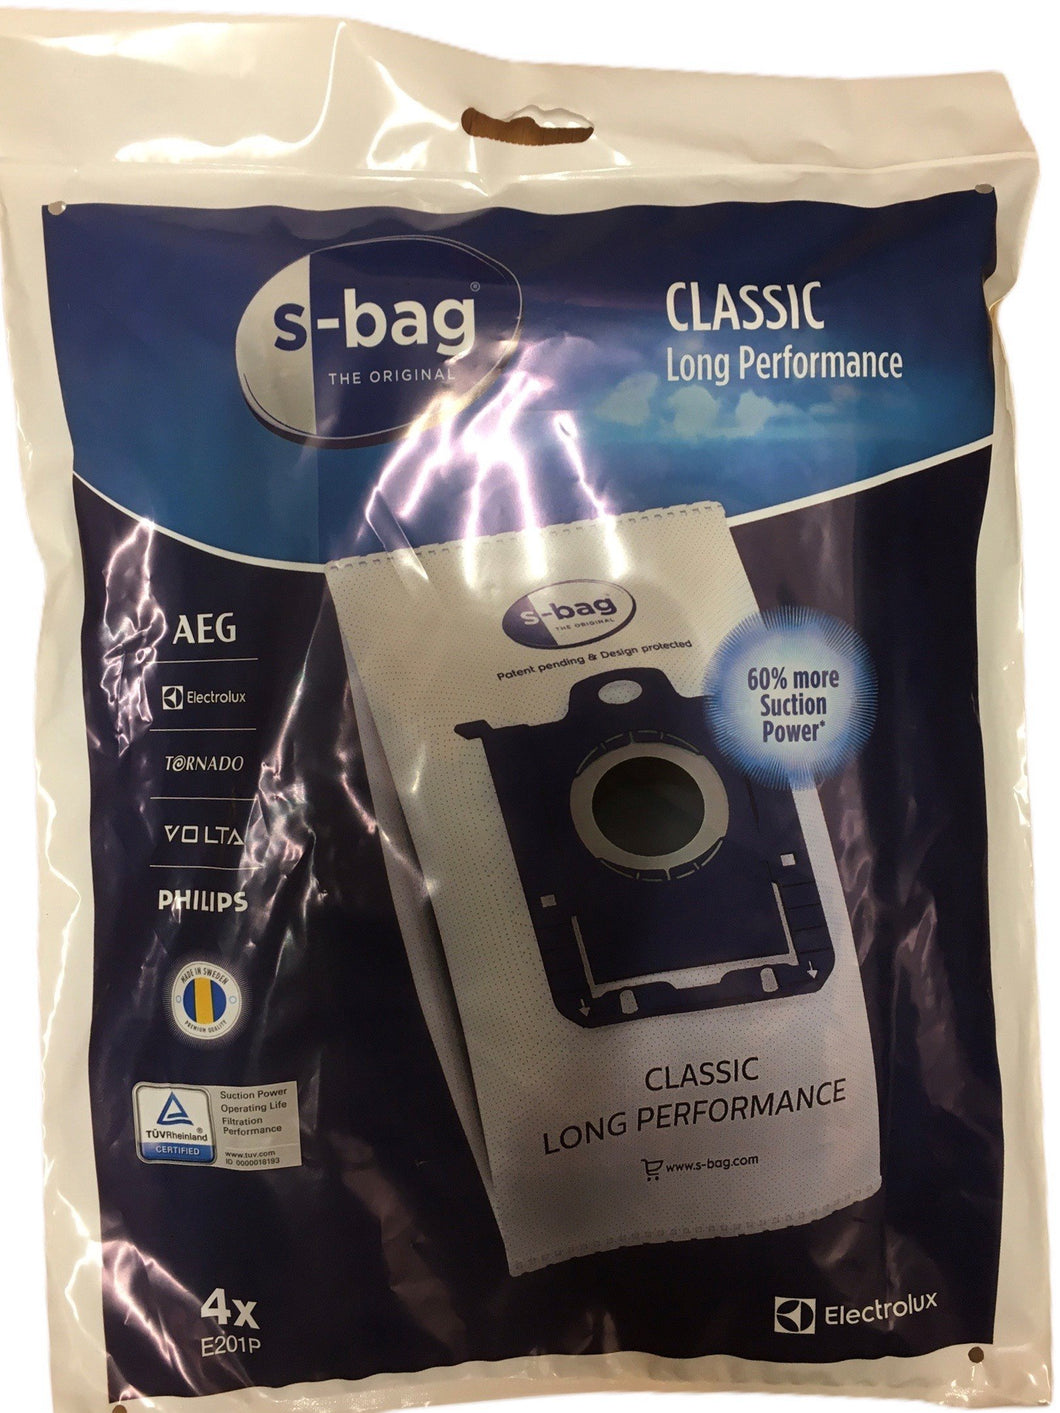 Electrolux AEG Philips E201p 4x Bags Microfibre S-Bag - Beattys of Loughrea , www.beattys.ie